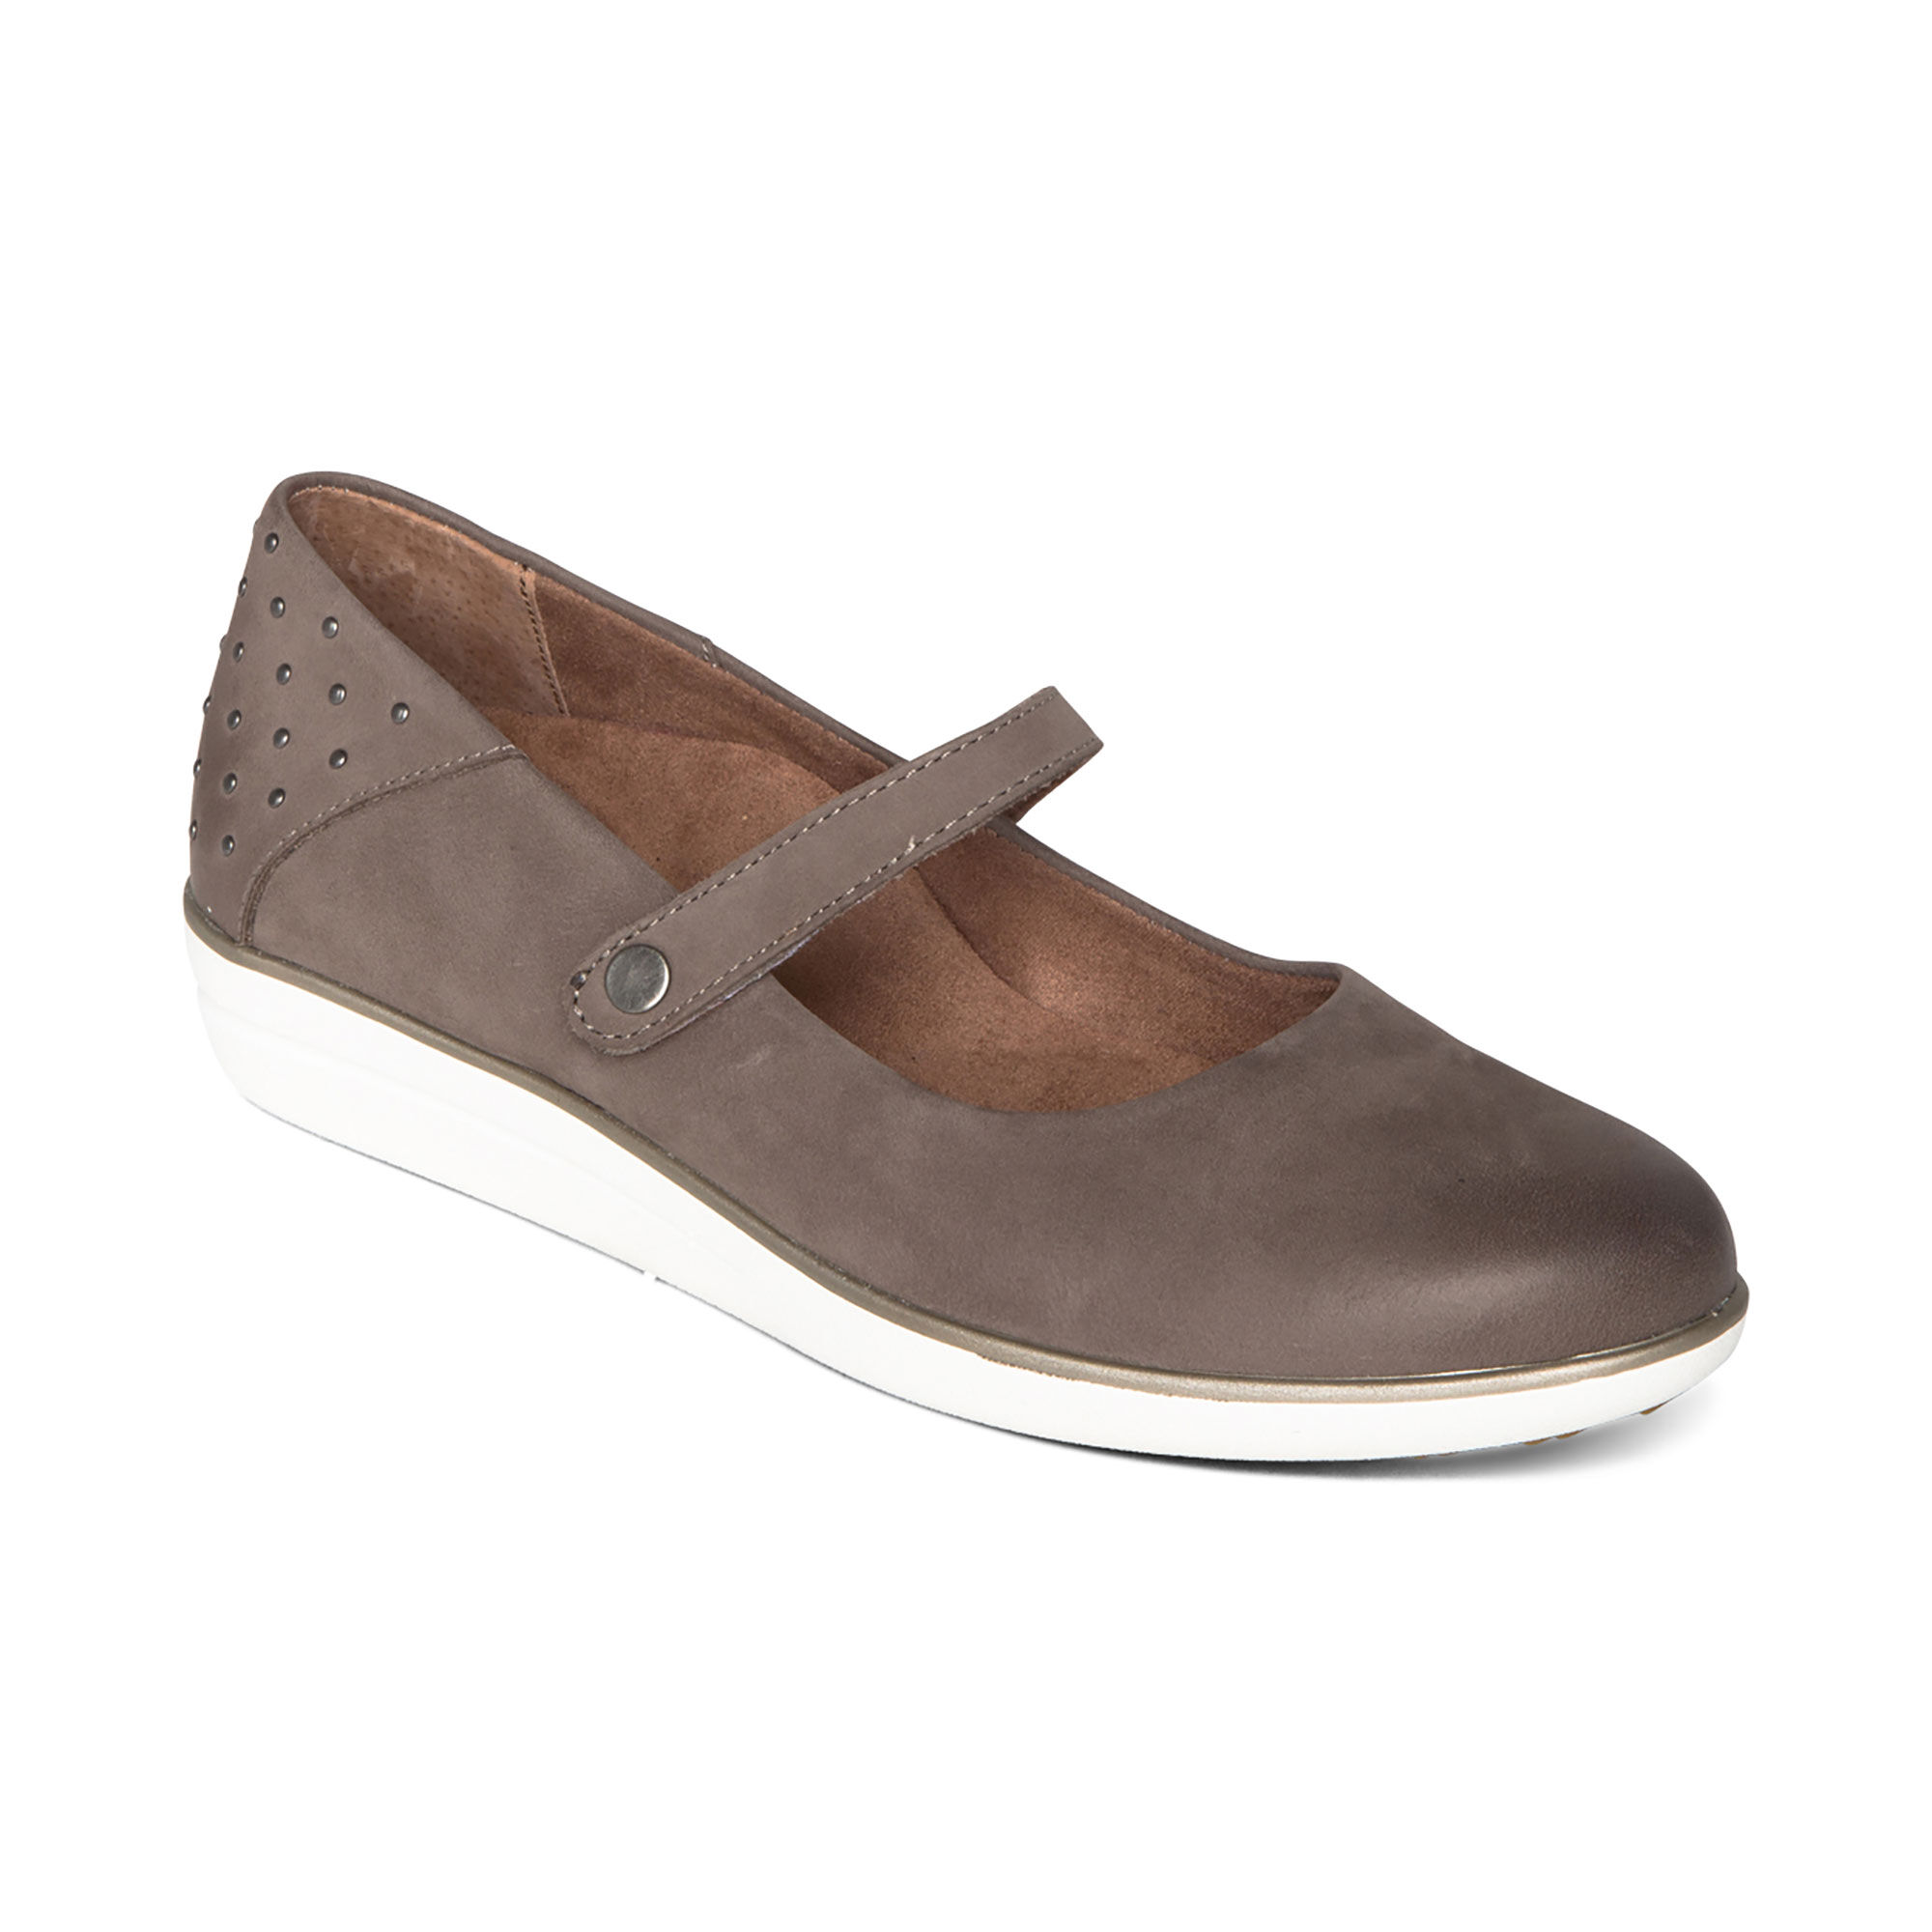 Comfort Mary Janes with Arch Support